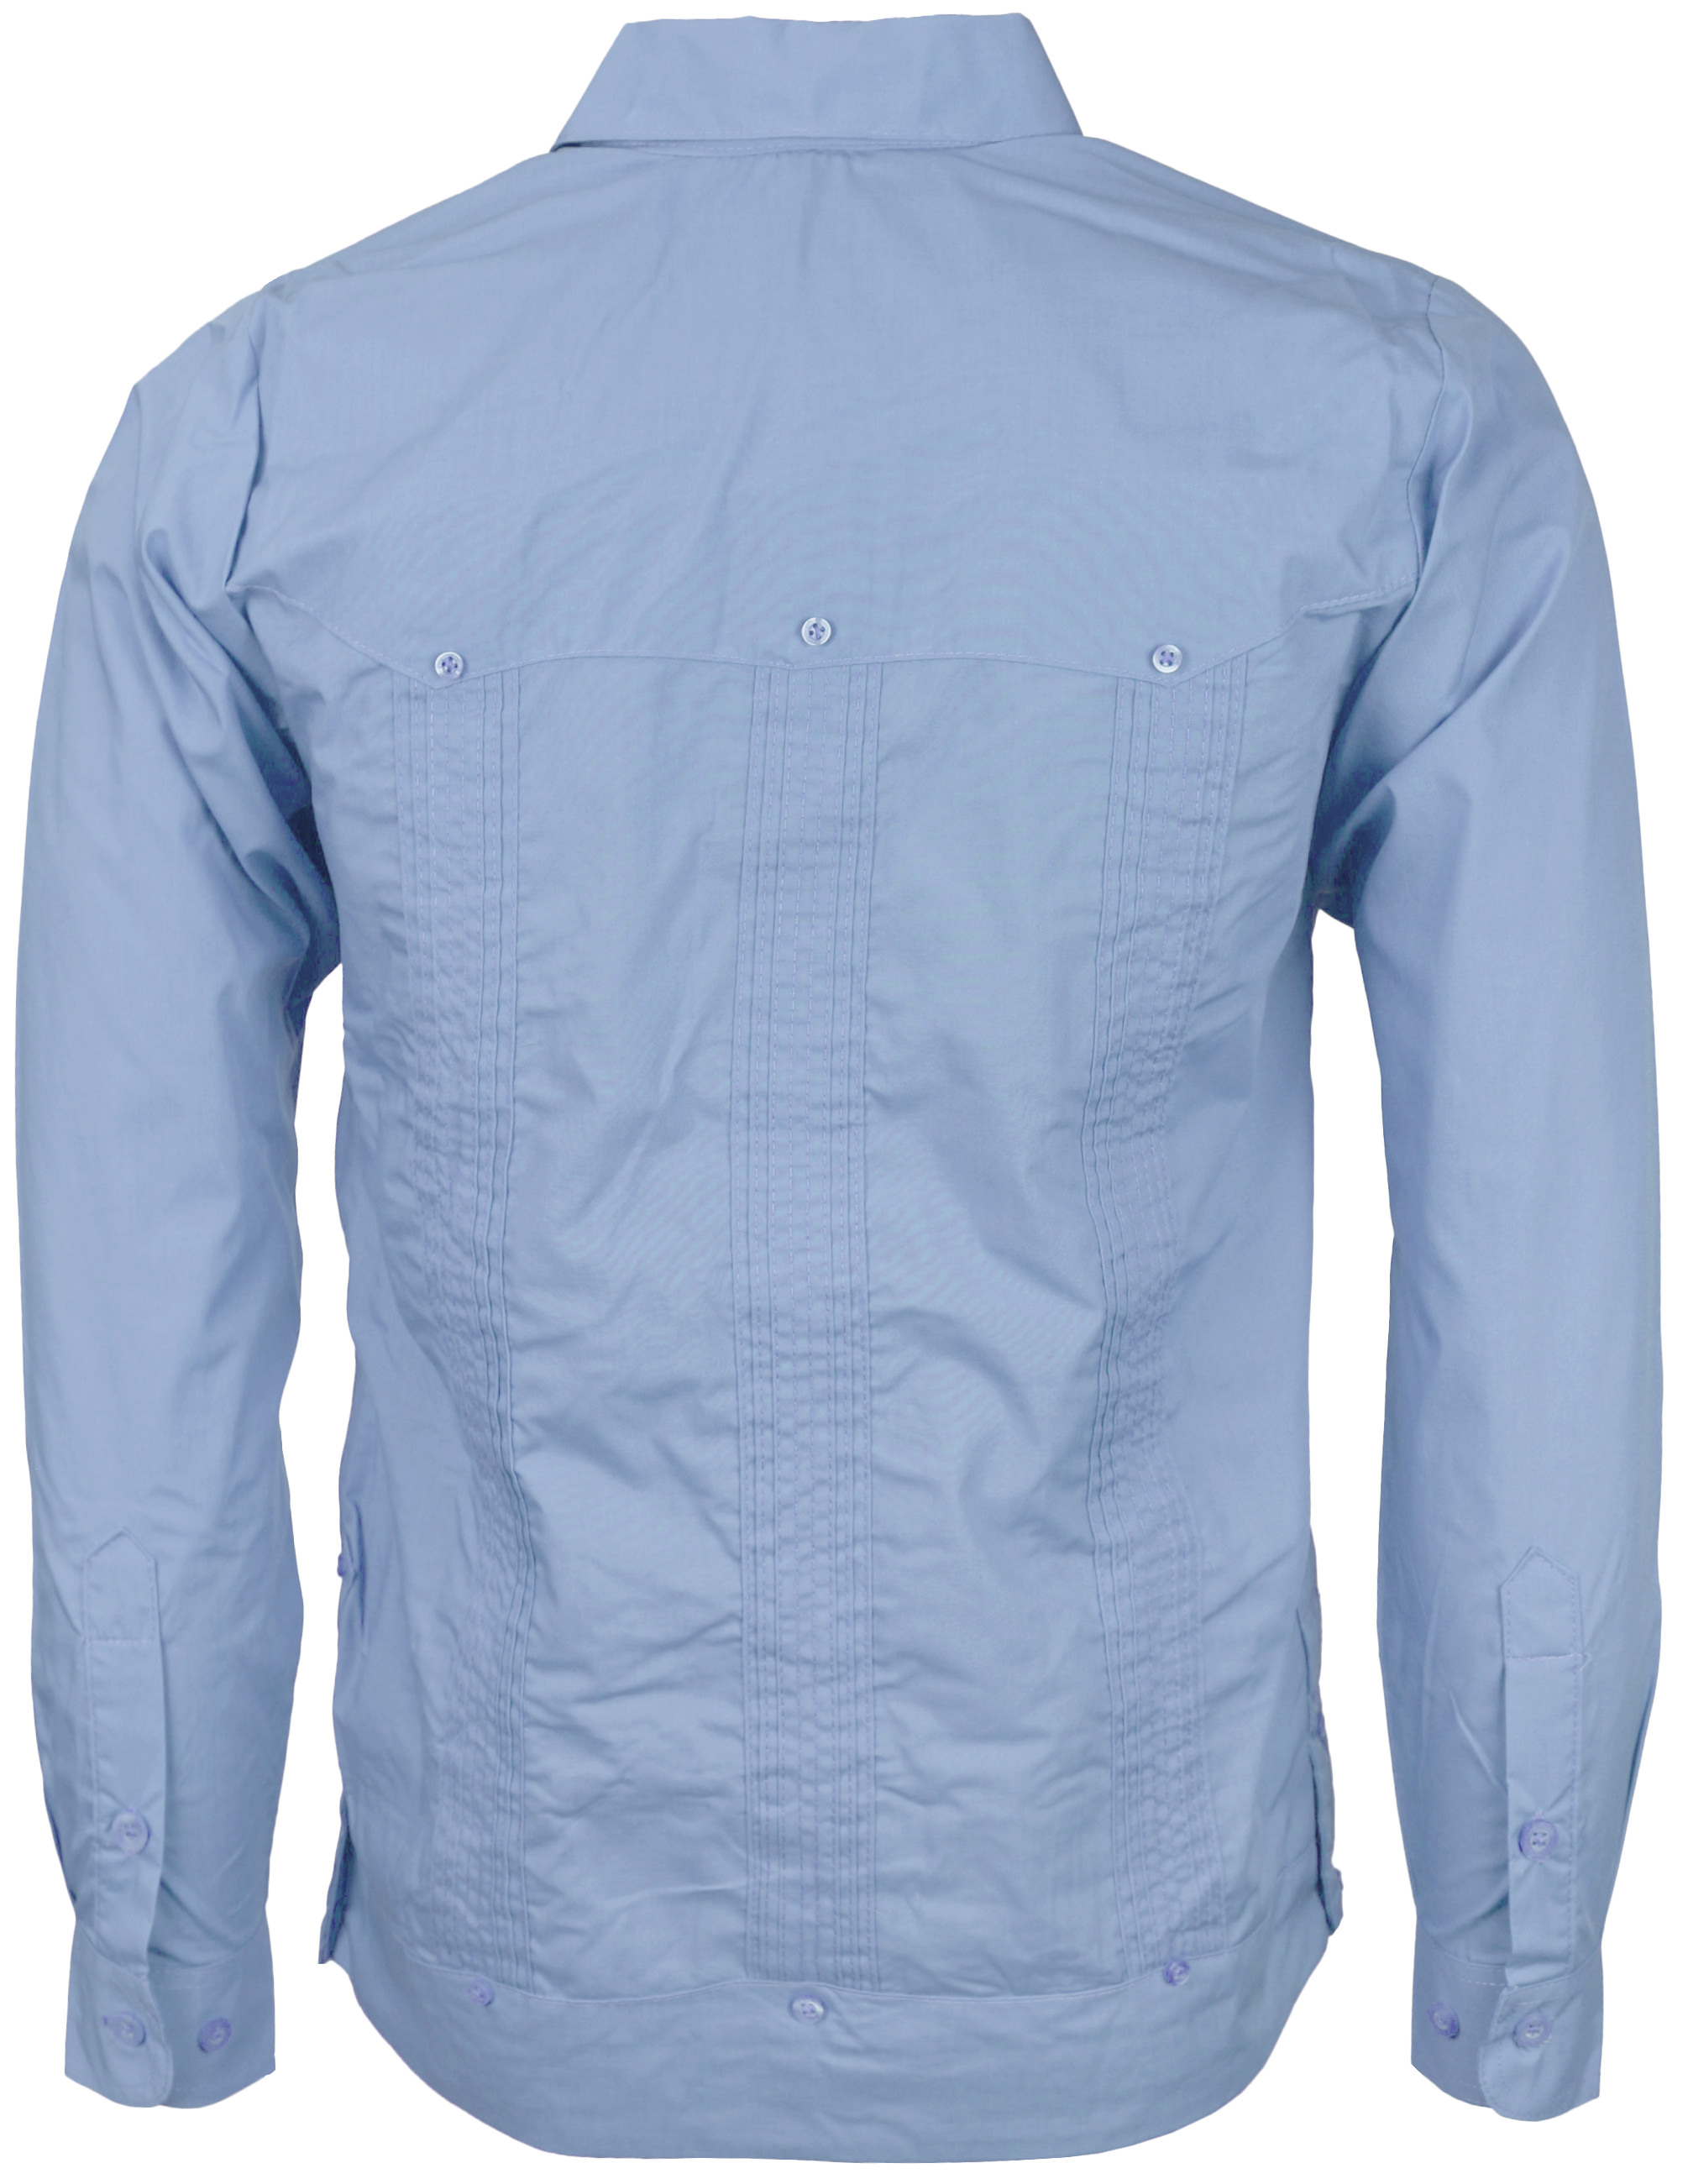 Men-039-s-Guayabera-Cuban-Beach-Long-Sleeve-Button-Up-Casual-Dress-Shirt-SLIM-FIT thumbnail 7